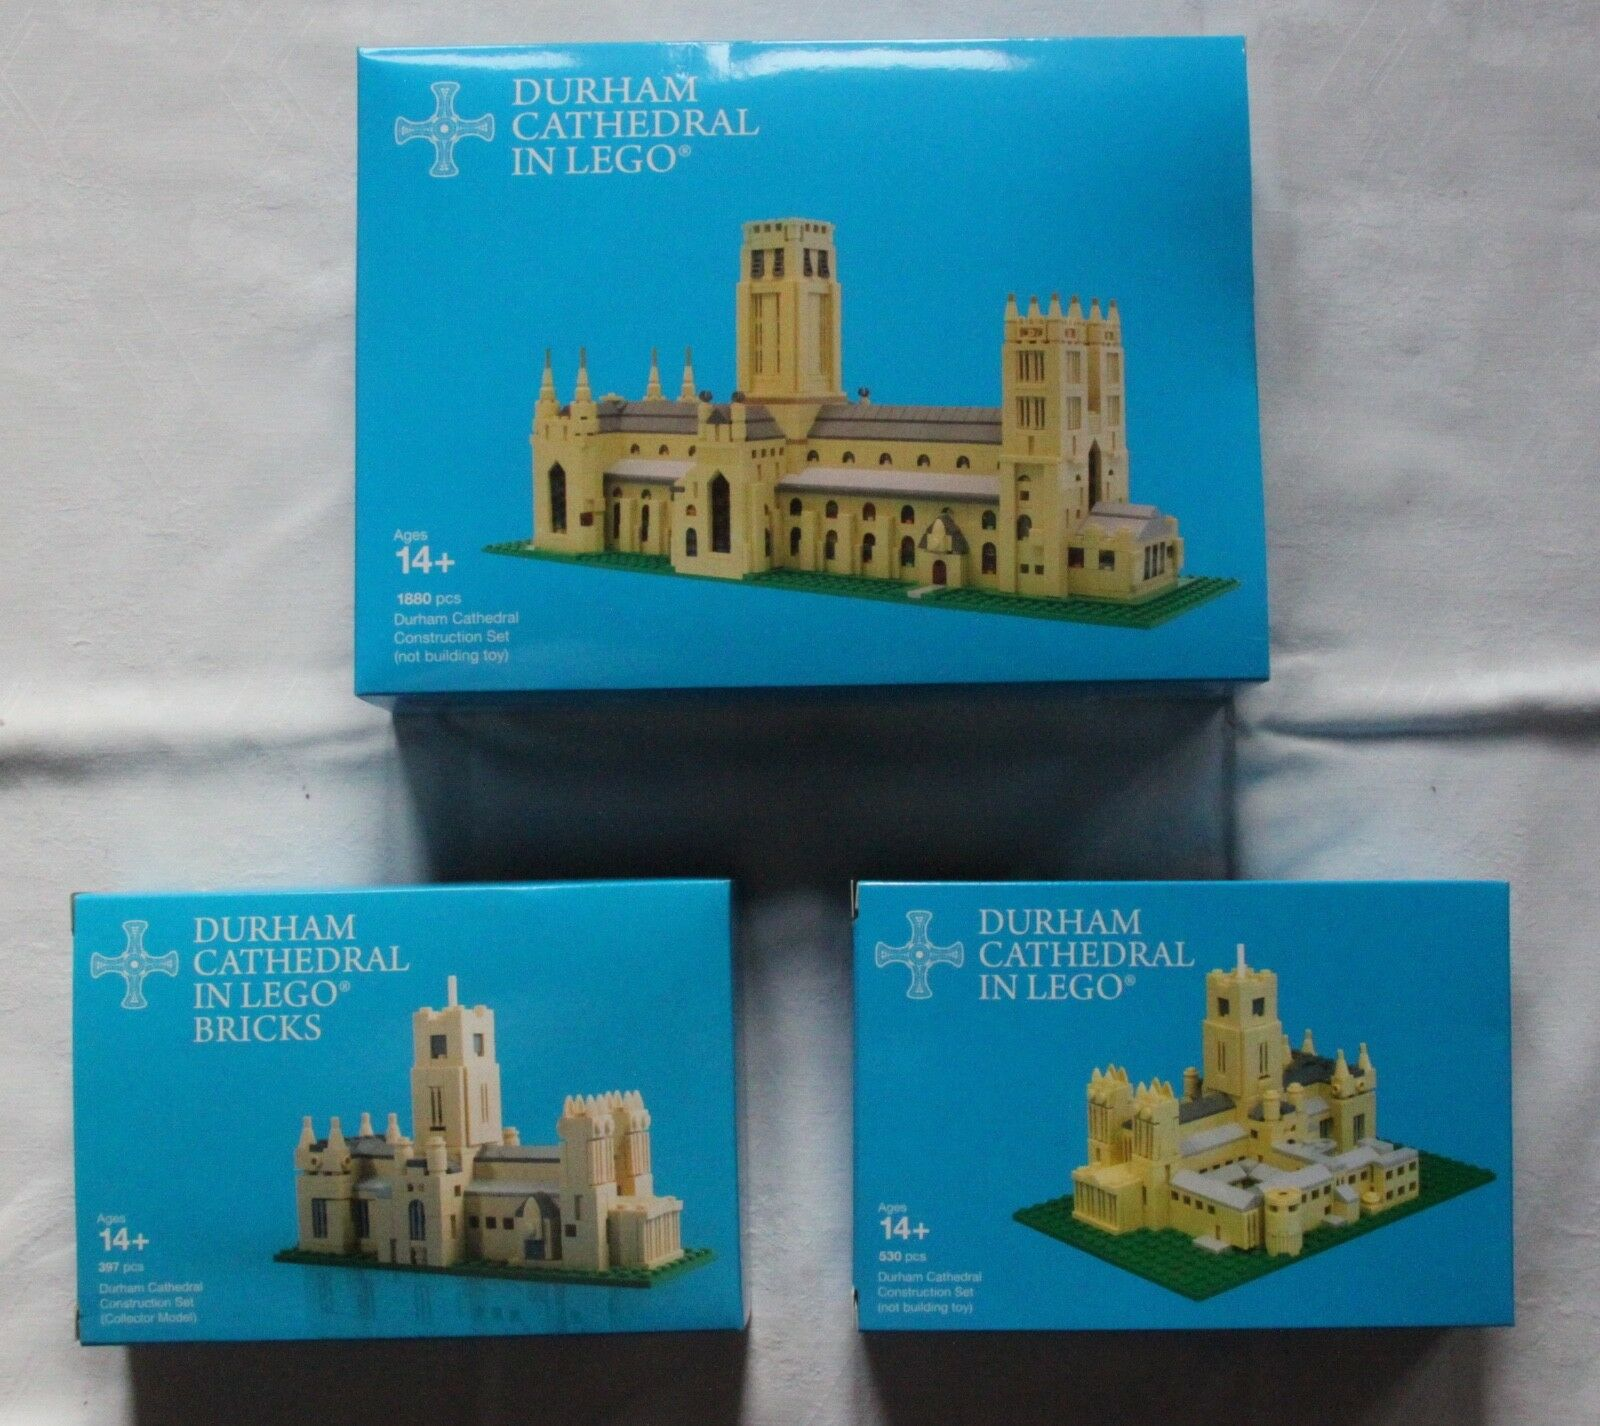 Durnham Cathedral en lego 3 ateur Certified Professional Limited Edition